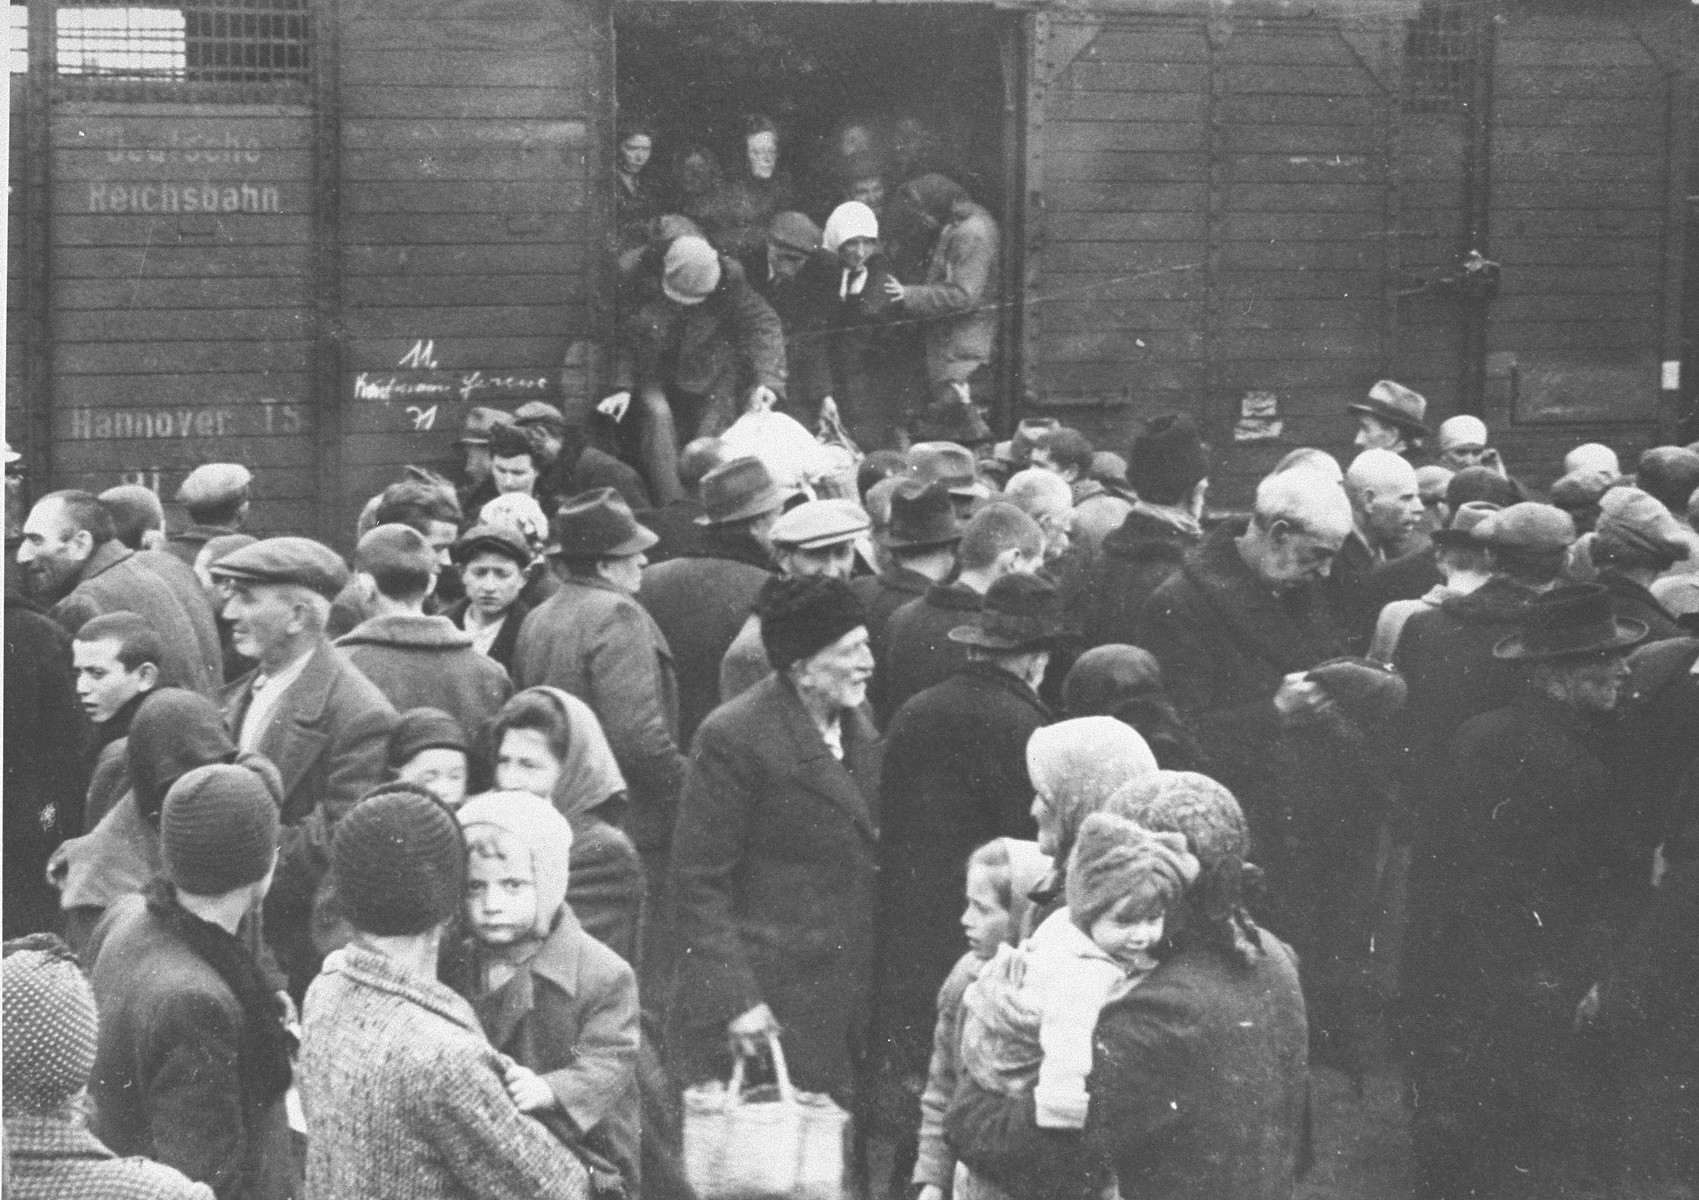 A transport of Jews from Subcarpathian Rus is taken off the trains and assembled on the ramp at Auschwitz-Birkenau.  Pictured in the center is Yitzhak Rubin.